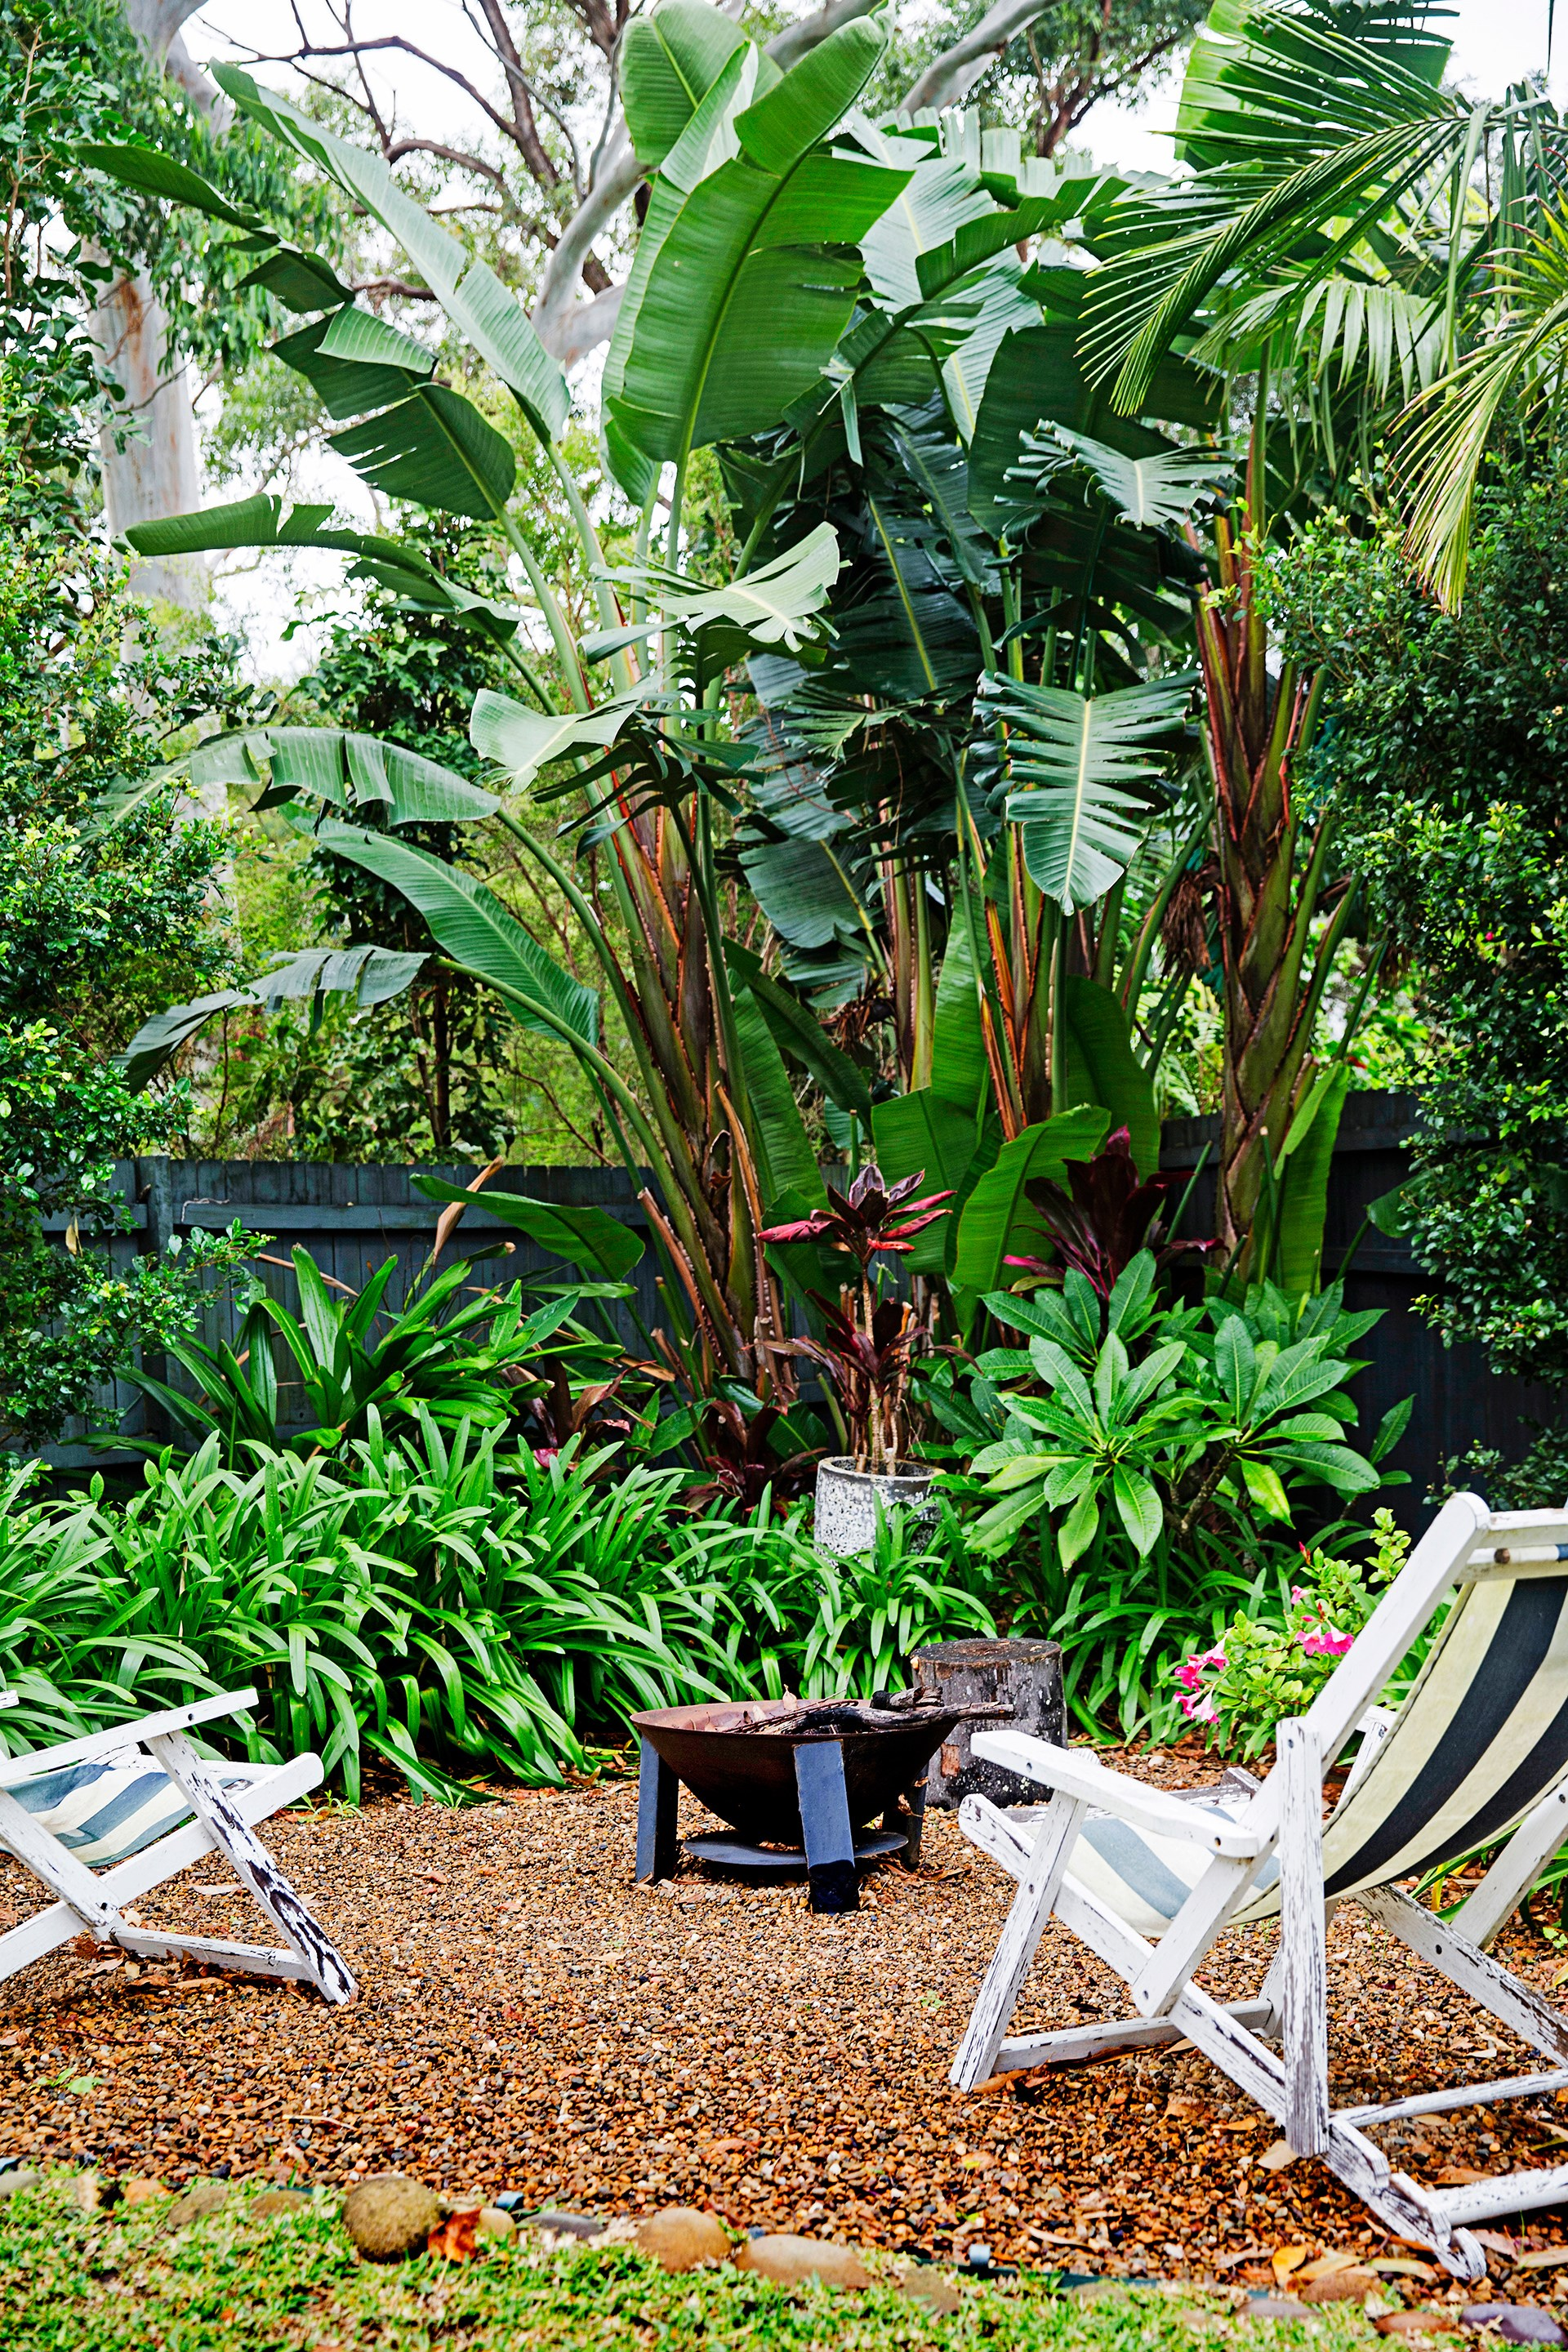 """**Create a focal point** – a central attraction to draw the eye allows you to have an 'unruly' approach to all other aspects of the garden. [Take a tour of this Balinese-inspired garden](http://www.homestolove.com.au/wendys-balinese-inspired-garden-1877